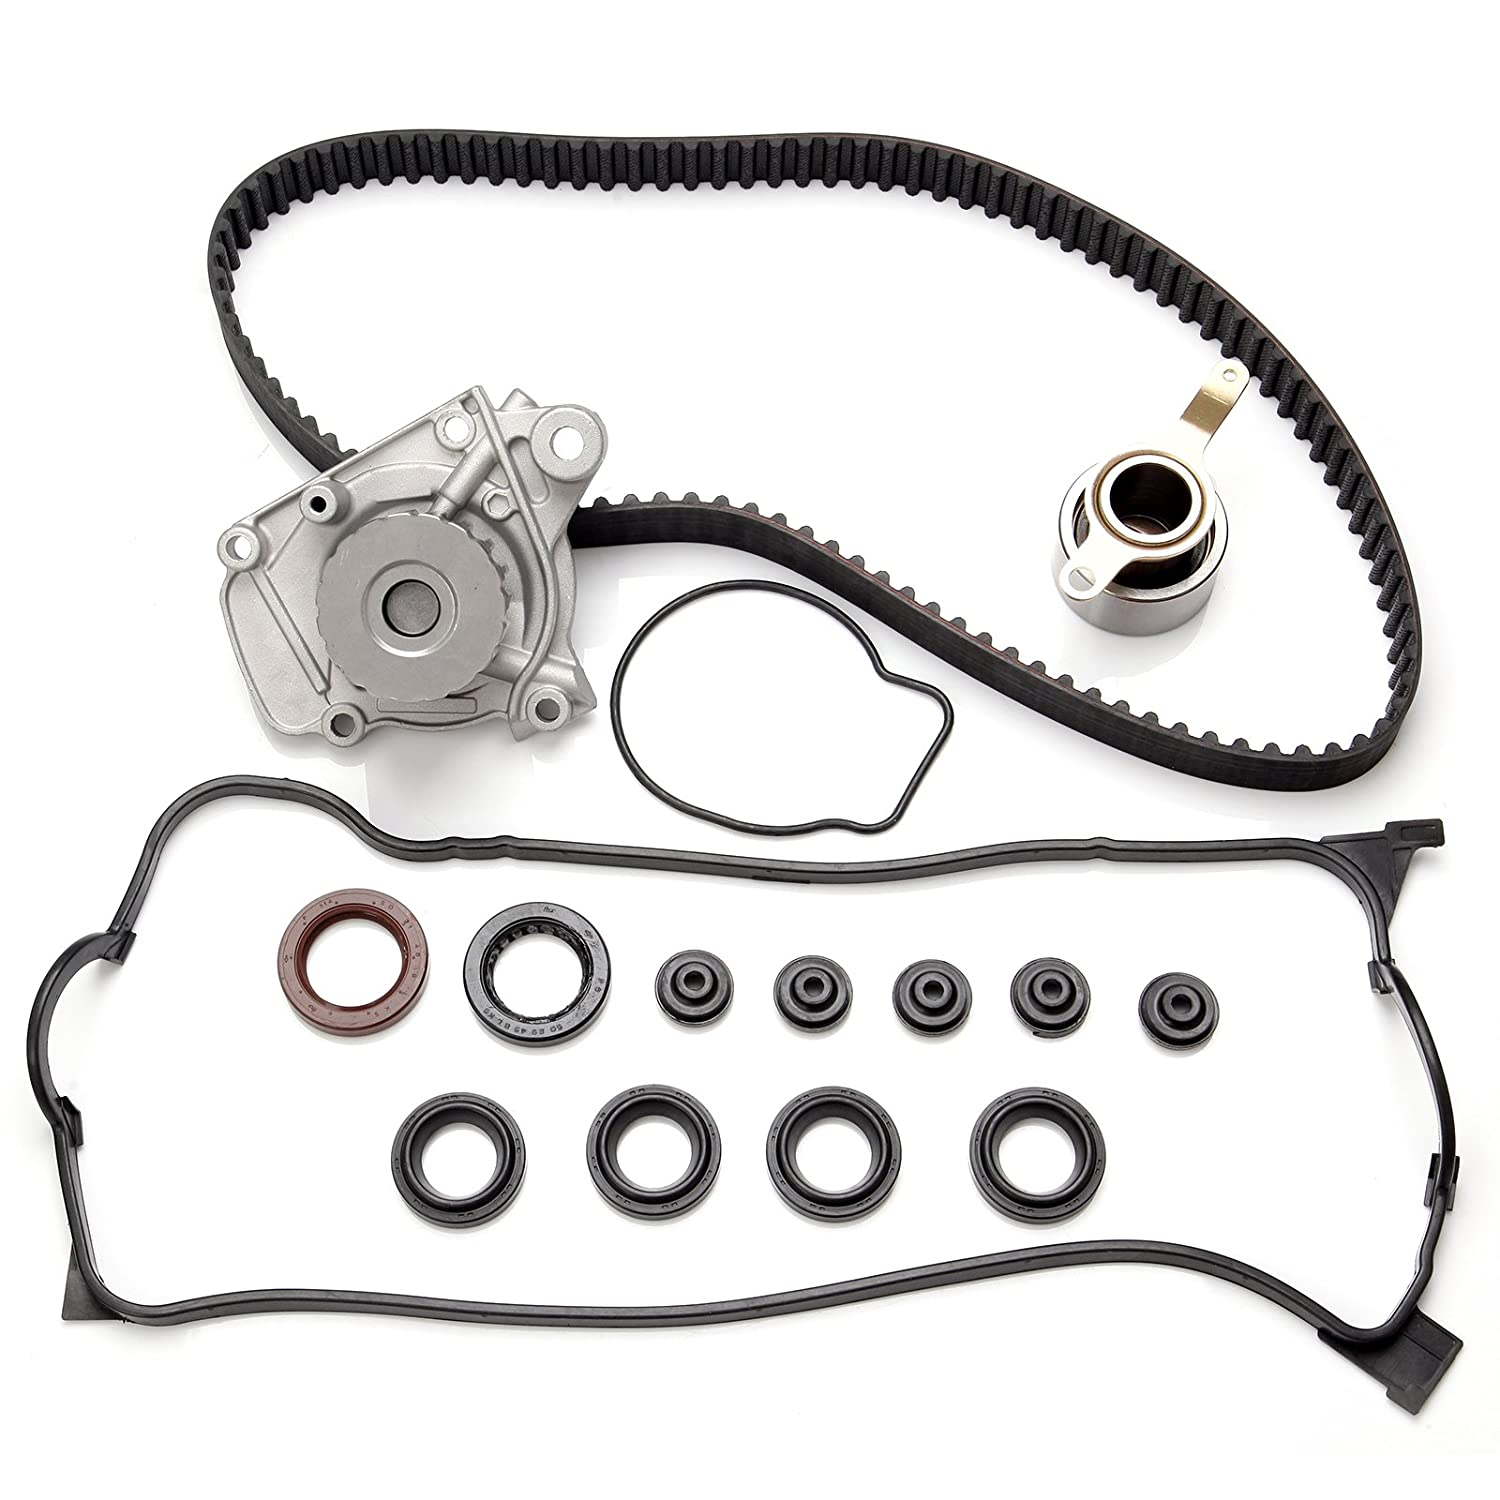 Scitoo Timing Belt Water Pump Kit Valve Cover Gasket For Honda Civic 1.6L SOHC D16Y7 1996-2000 052727-5206-1659423